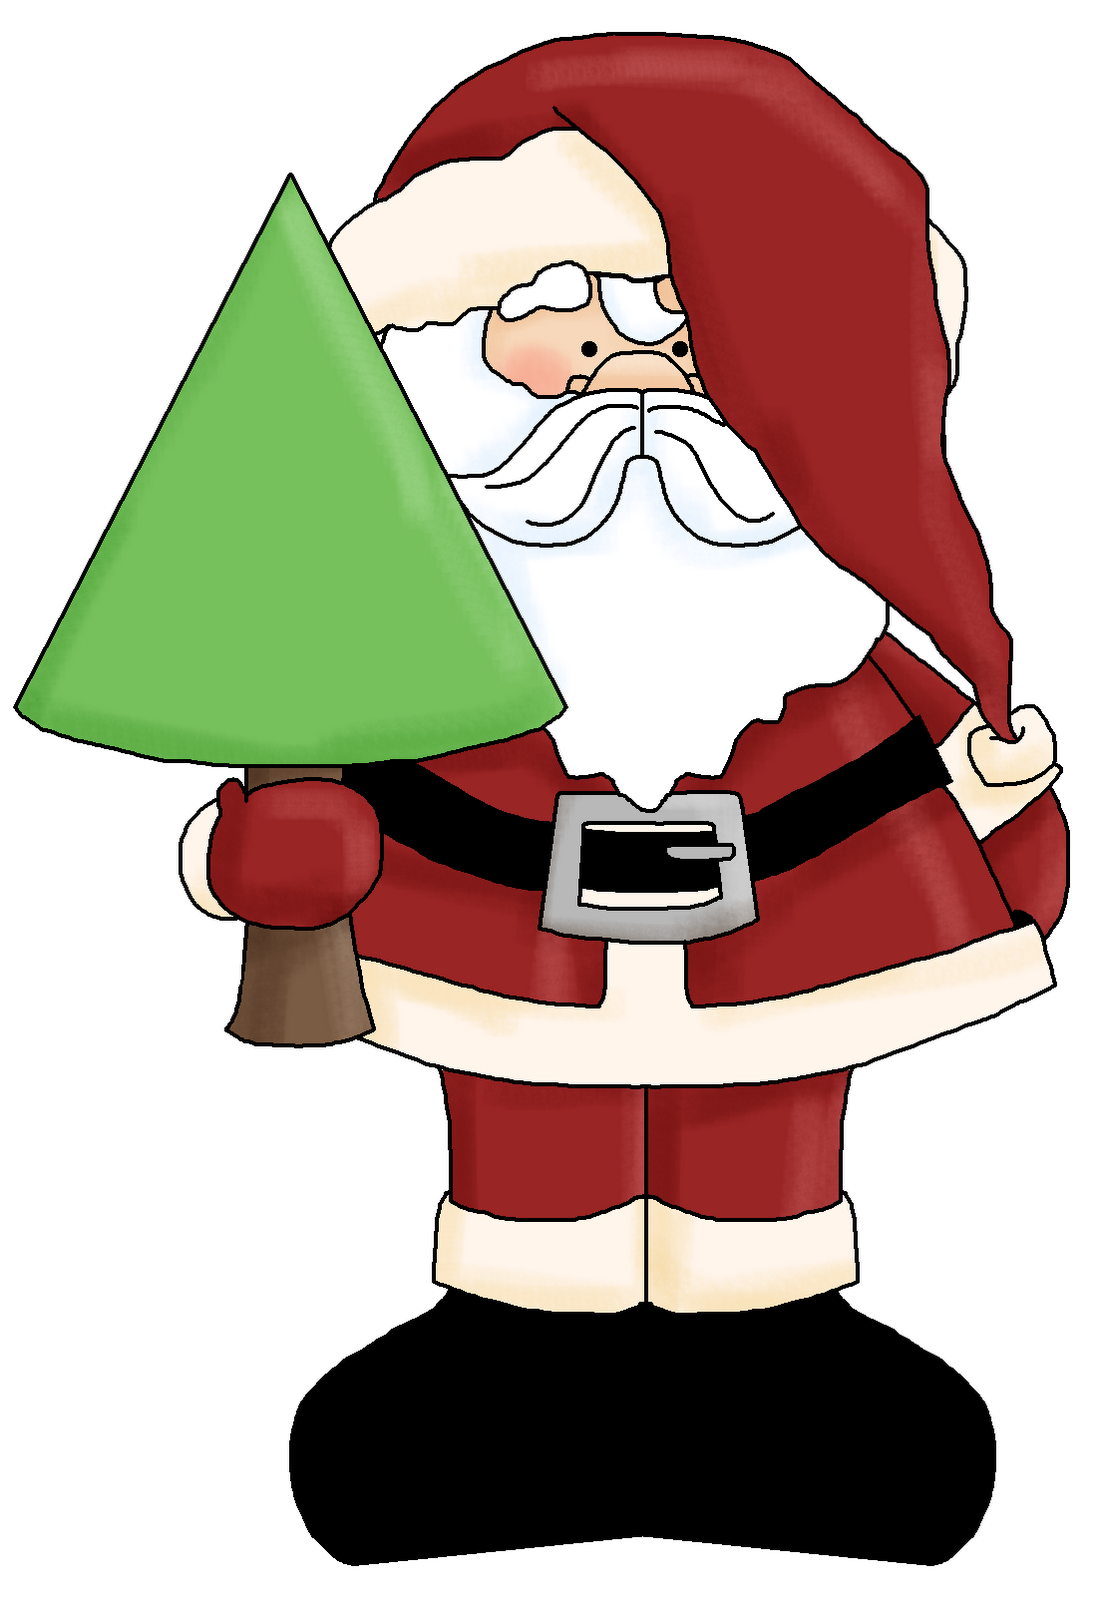 Christmas gift exchange clipart graphic library library Christmas Gift Ideas for Your Students - Shelley Gray graphic library library